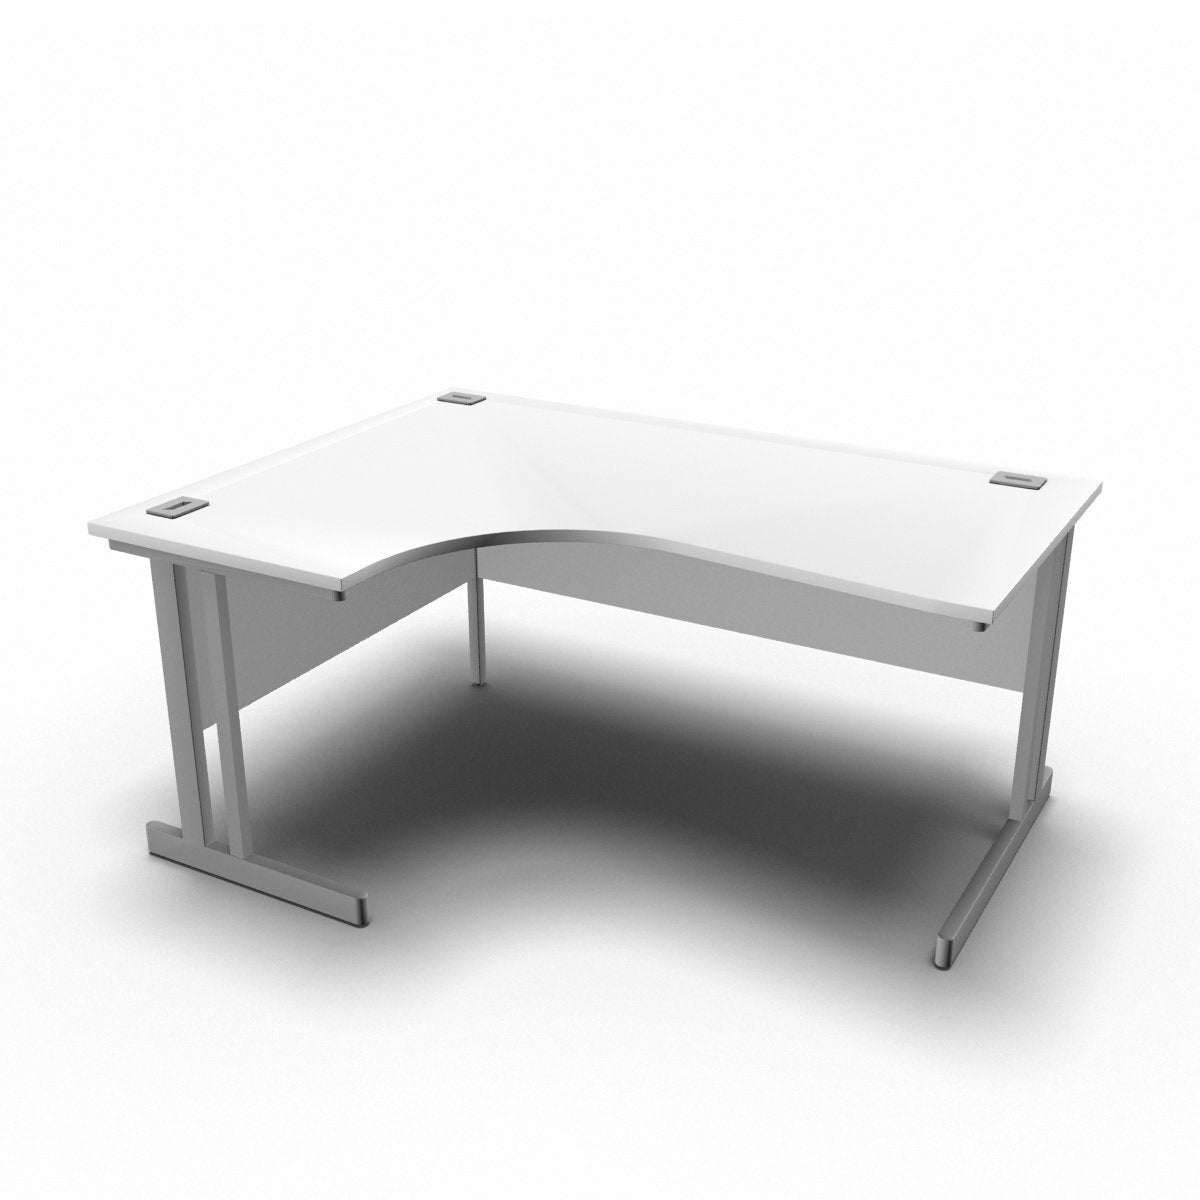 Desk 1600 x 1200 x 800 x 600mm / Left / White Synergy Crescent Desks